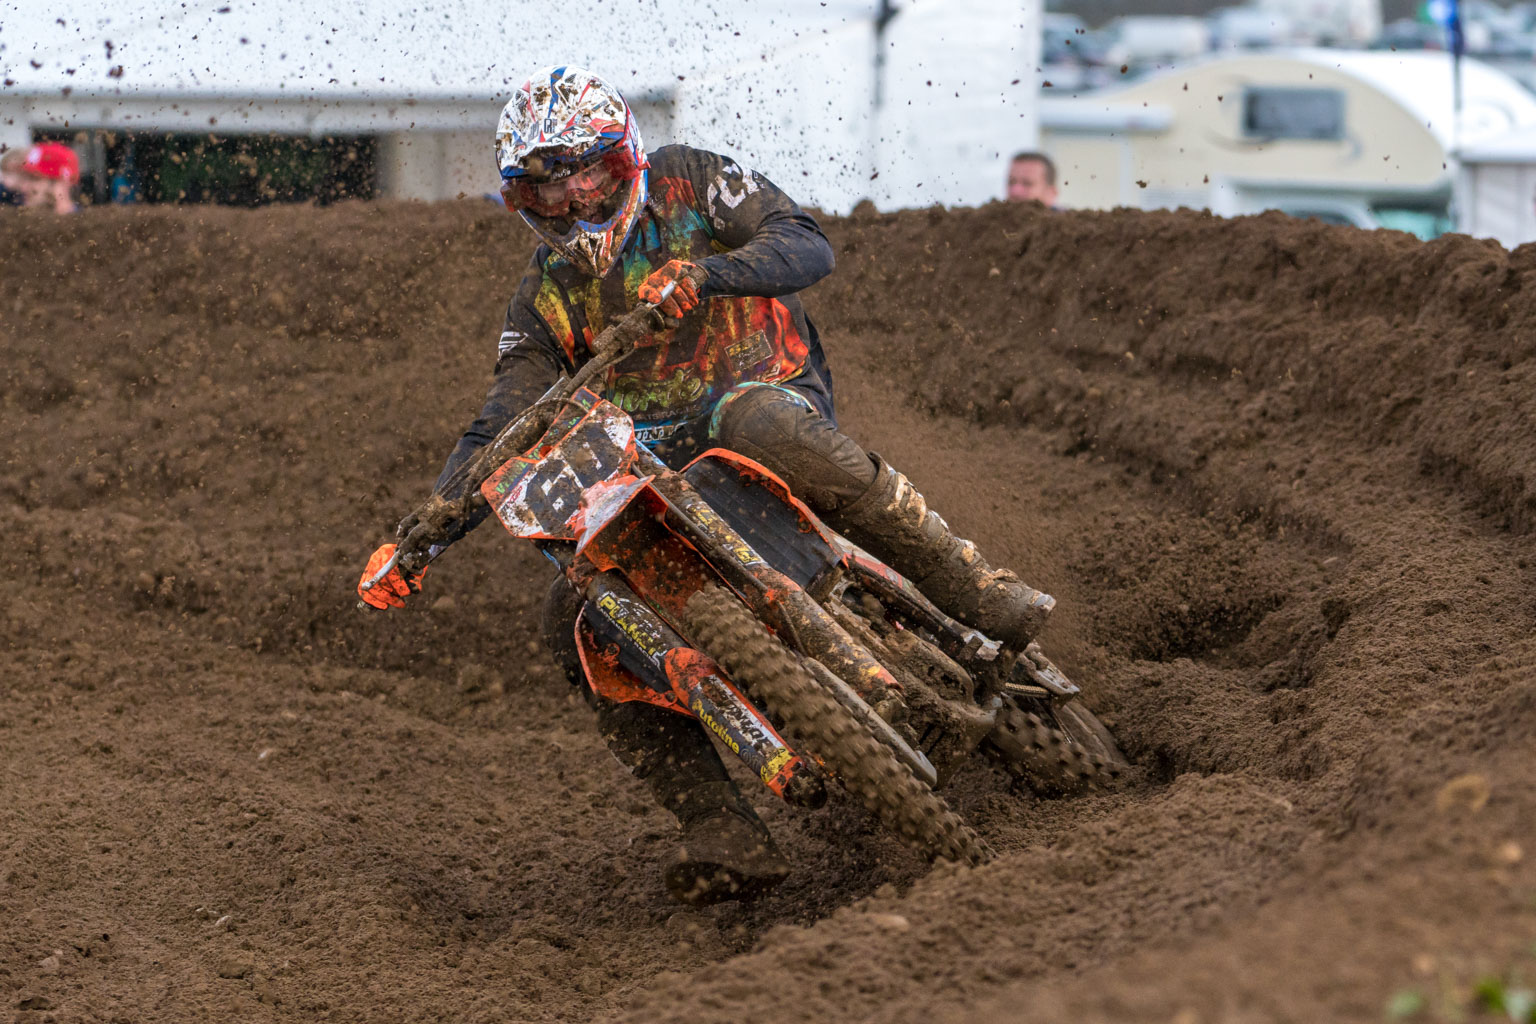 Can Brad Anderson get onto the podium at Culham?